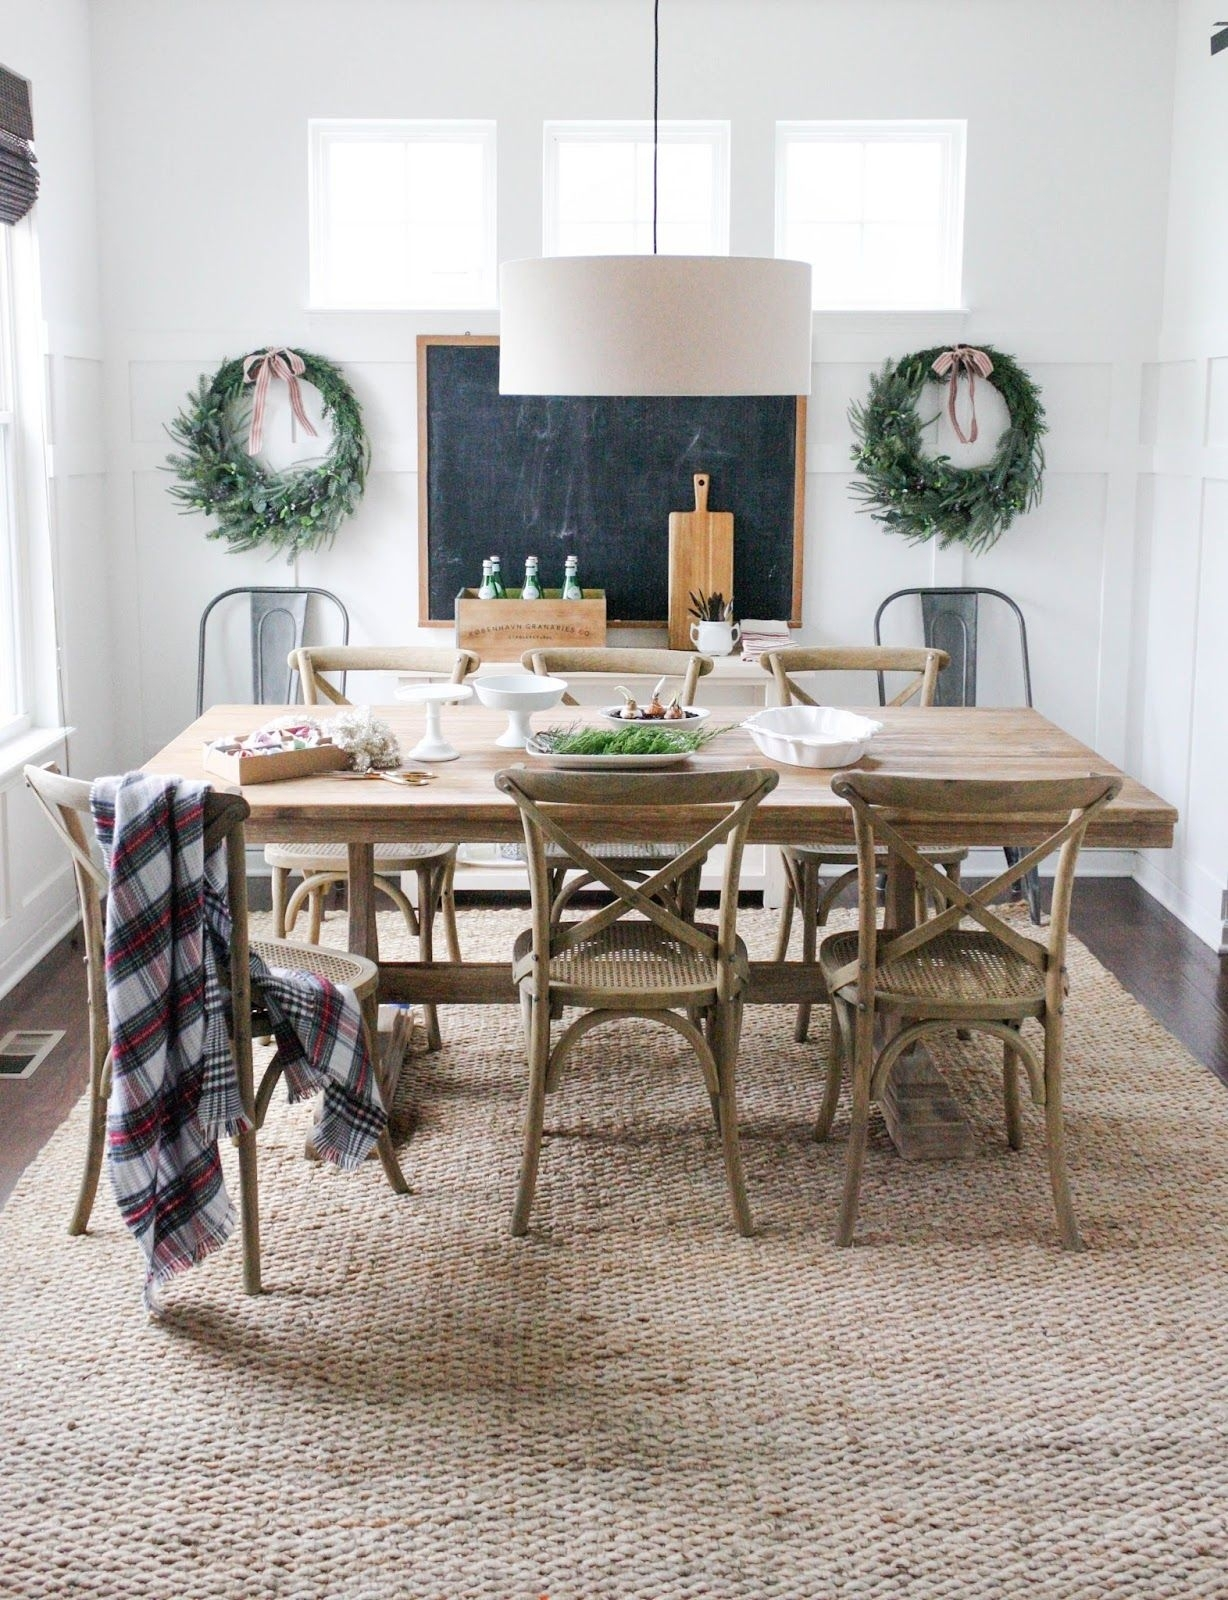 Jute Rug From Rugs Usa; Dining Table From World Market; Chairs From For 2018 Market Dining Tables (Image 12 of 20)